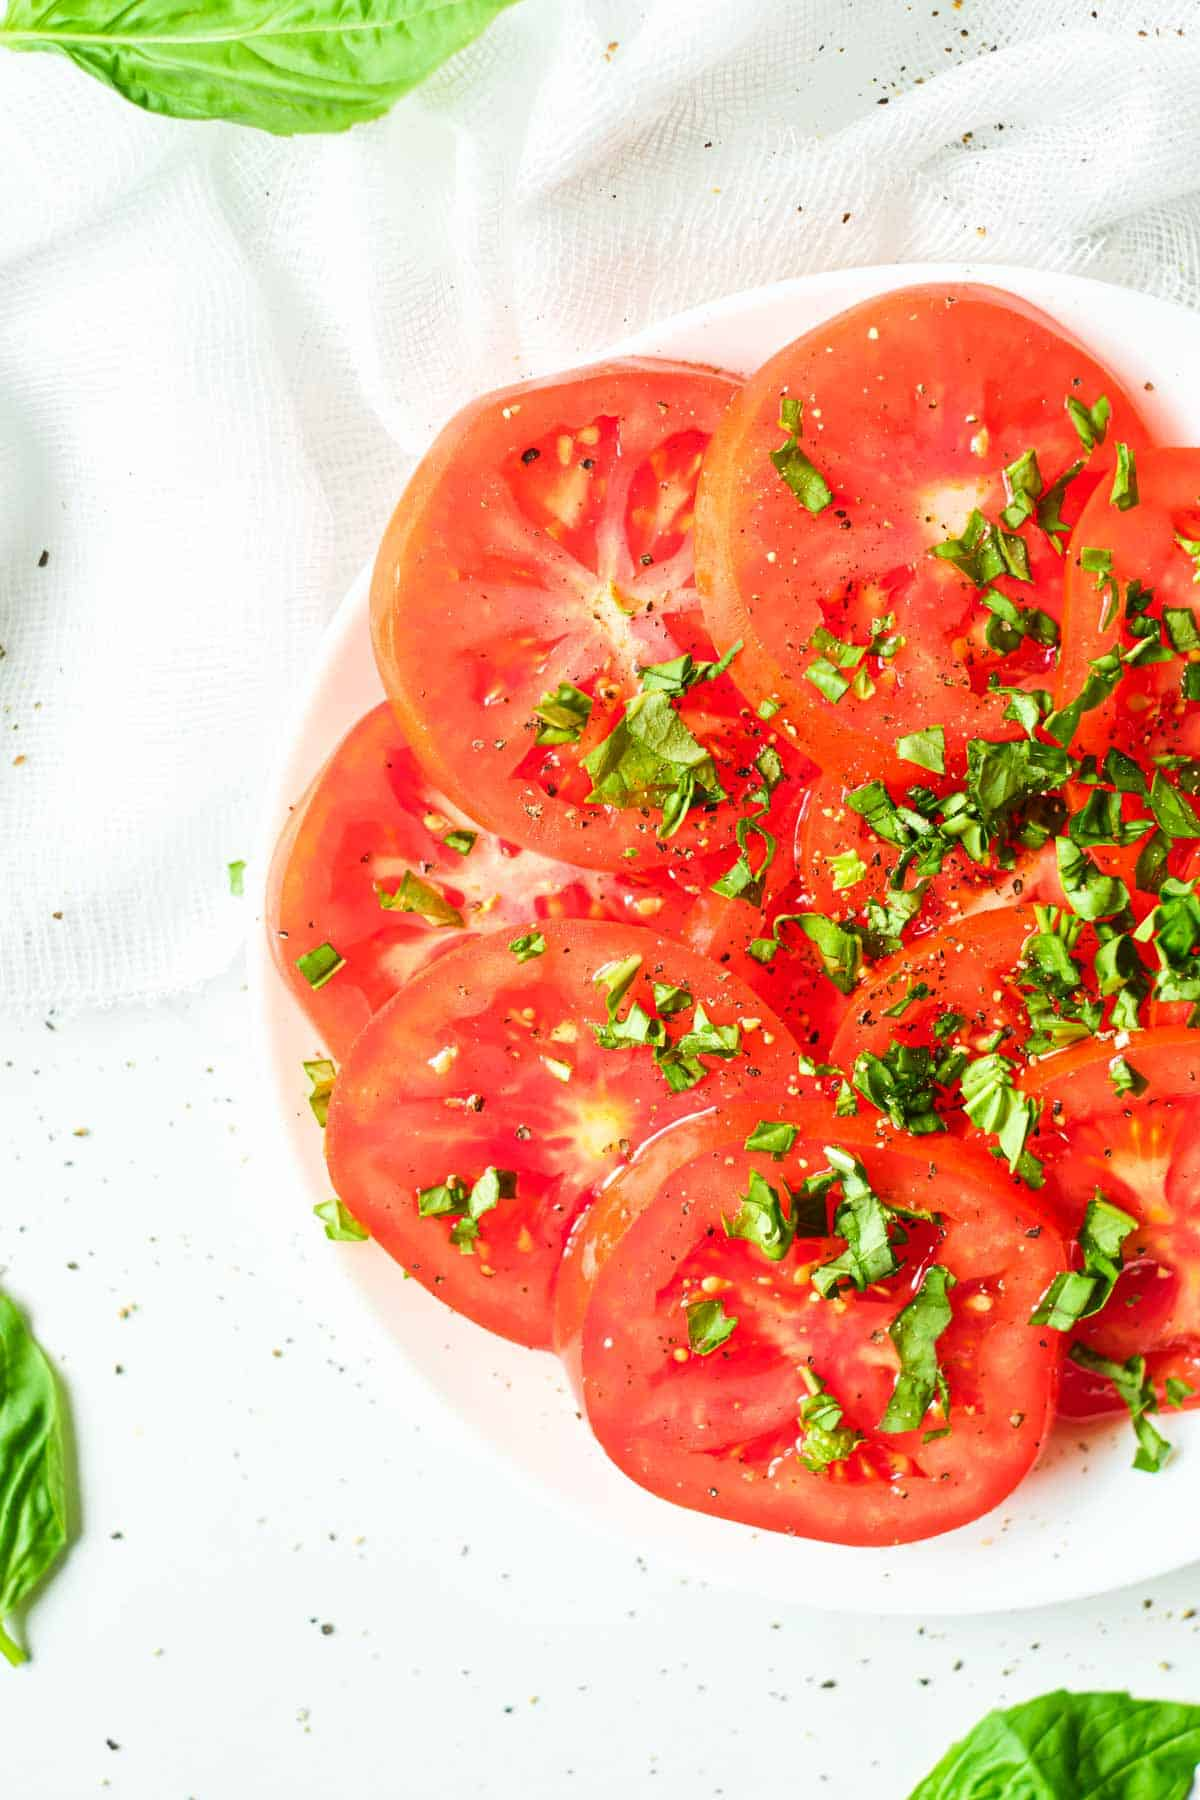 top down view of a plate filled with marinated tomatoes and basil